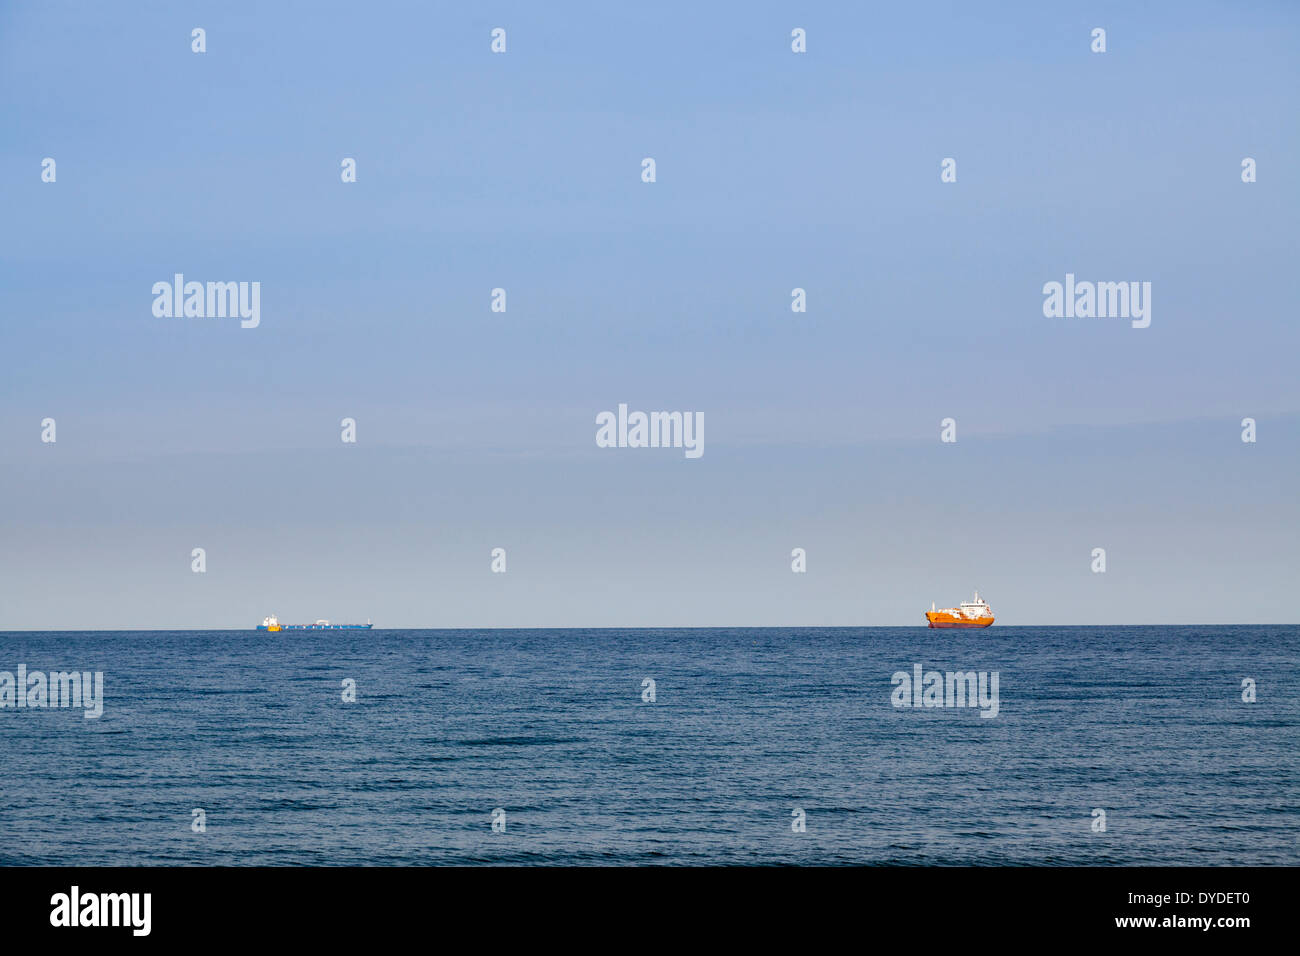 Container ships on the horizon at sea. - Stock Image